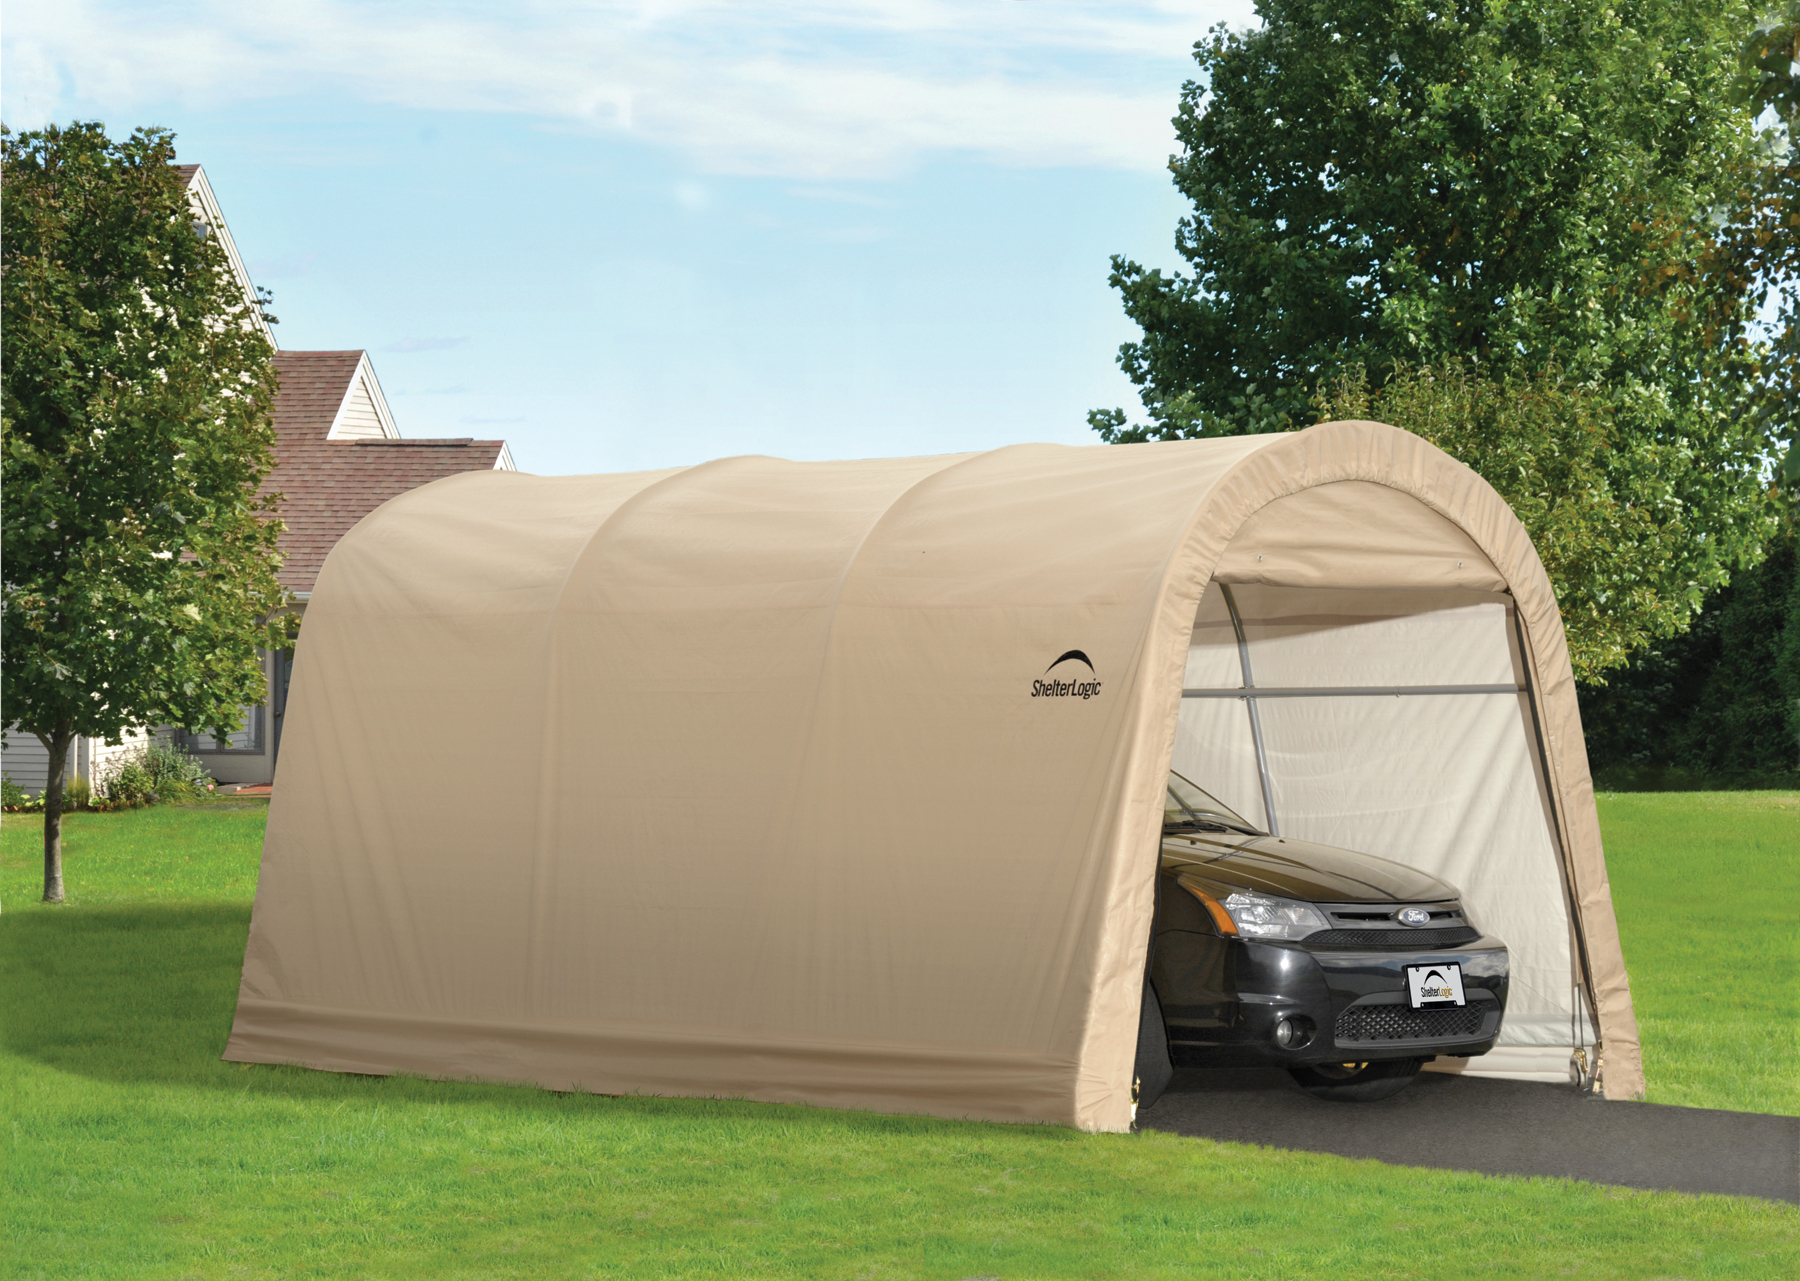 10 x 15 Round auto shelter Garage review & Portable Car Garages From Costco? Read This First! | Portable Car ...